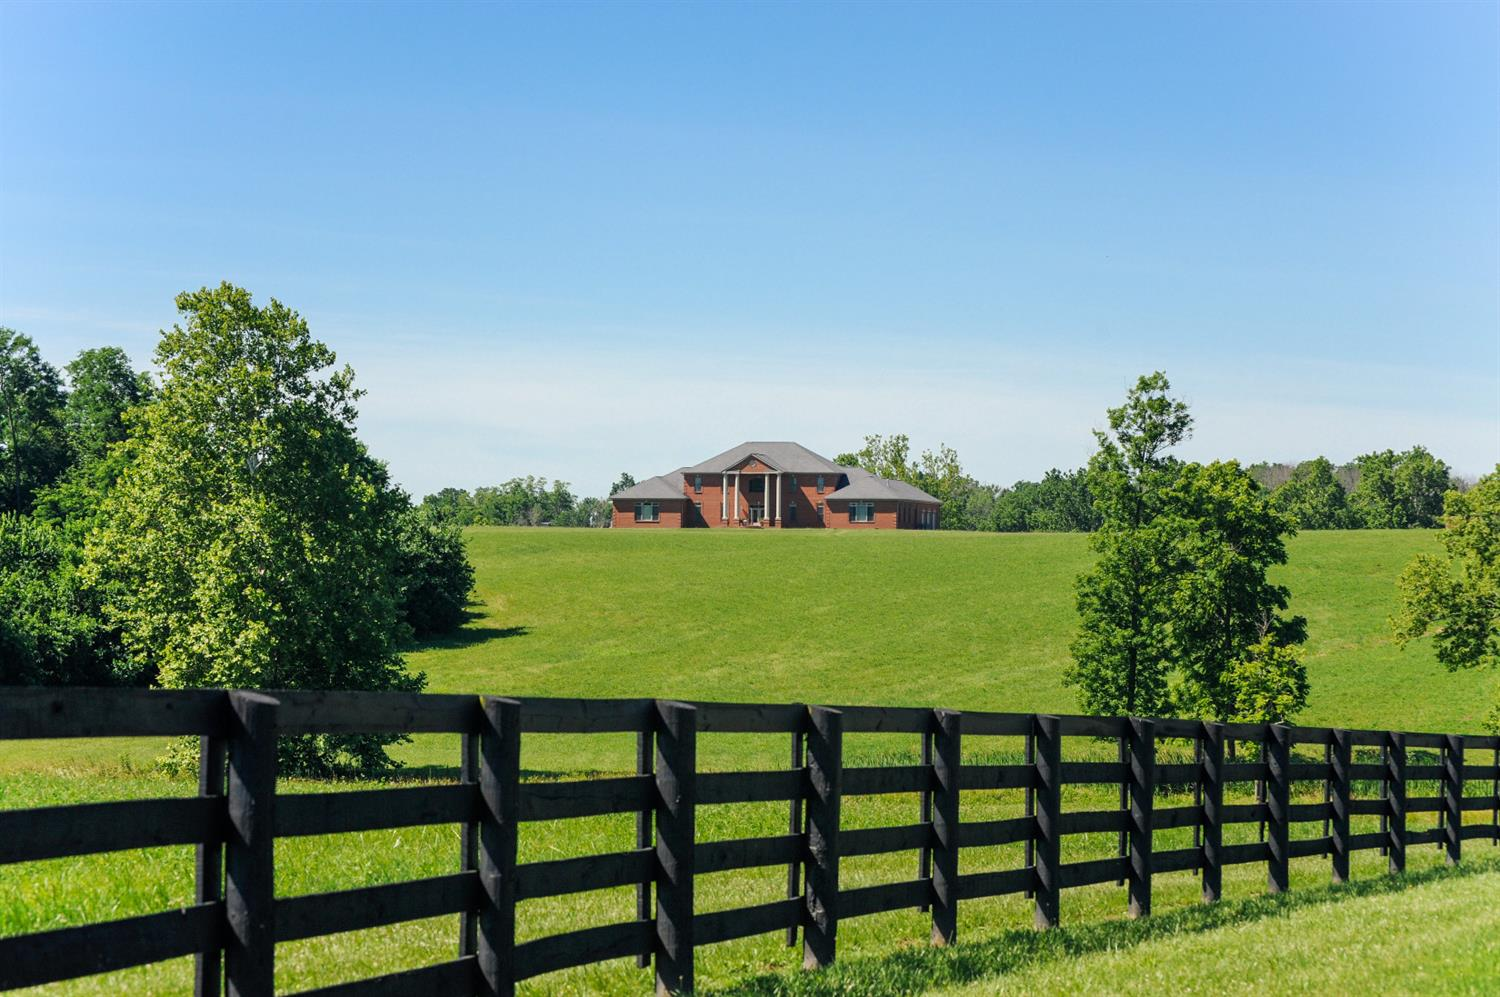 Fantastic%20opportunity%20to%20own%20an%20extraordinary%20custom%20home%20in%20the%20heart%20of%20the%20Bluegrass!%20This%20traditional%20Kentucky%20Manor%20home%20boasts%20over%209,000%20sqft%20of%20finished%20living%20space%20and%204,000%20sqft%20of%20partially%20finished%20below%20grade%20space.%20The%20first%20floor%20conveniently%20features%20a%20grand%20master%20suite,%20complete%20with%20a%20fireplace,%20oversized%20walk-in%20closets%20and%20huge%20master%20bath%20with%20shower%20&%20Jacuzzi%20tub.%20%20No%20expense%20was%20spared%20in%20the%20gourmet%20kitchen.%20Complete%20with%204%20dishwashers,%20top%20of%20the%20line%20gas%20stove%20and%20ovens,%20granite%20counter%20tops%20throughout.%20Each%20floor%20conveniently%20features%20its%20own%20laundry%20space.%20Stunning%20sunset%20views%20off%20the%20back%20patio%20overlooking%20lush%20pastures.%20All%20bedrooms%20have%20an%20en%20suite%20bath.%20A%20blank%20canvas%20of%20137%20rolling%20acres%20awaits%20to%20build%20the%20horse%20property%20of%20your%20dreams.%20%20A%20high%20powered%20well,%20along%20with%20KU%20electric%20is%20in%20place%20toward%20the%20back%20of%20the%20property.%20Very%20private%20yet%20just%20a%20short%20drive%20into%20the%20heart%20of%20Lexington.